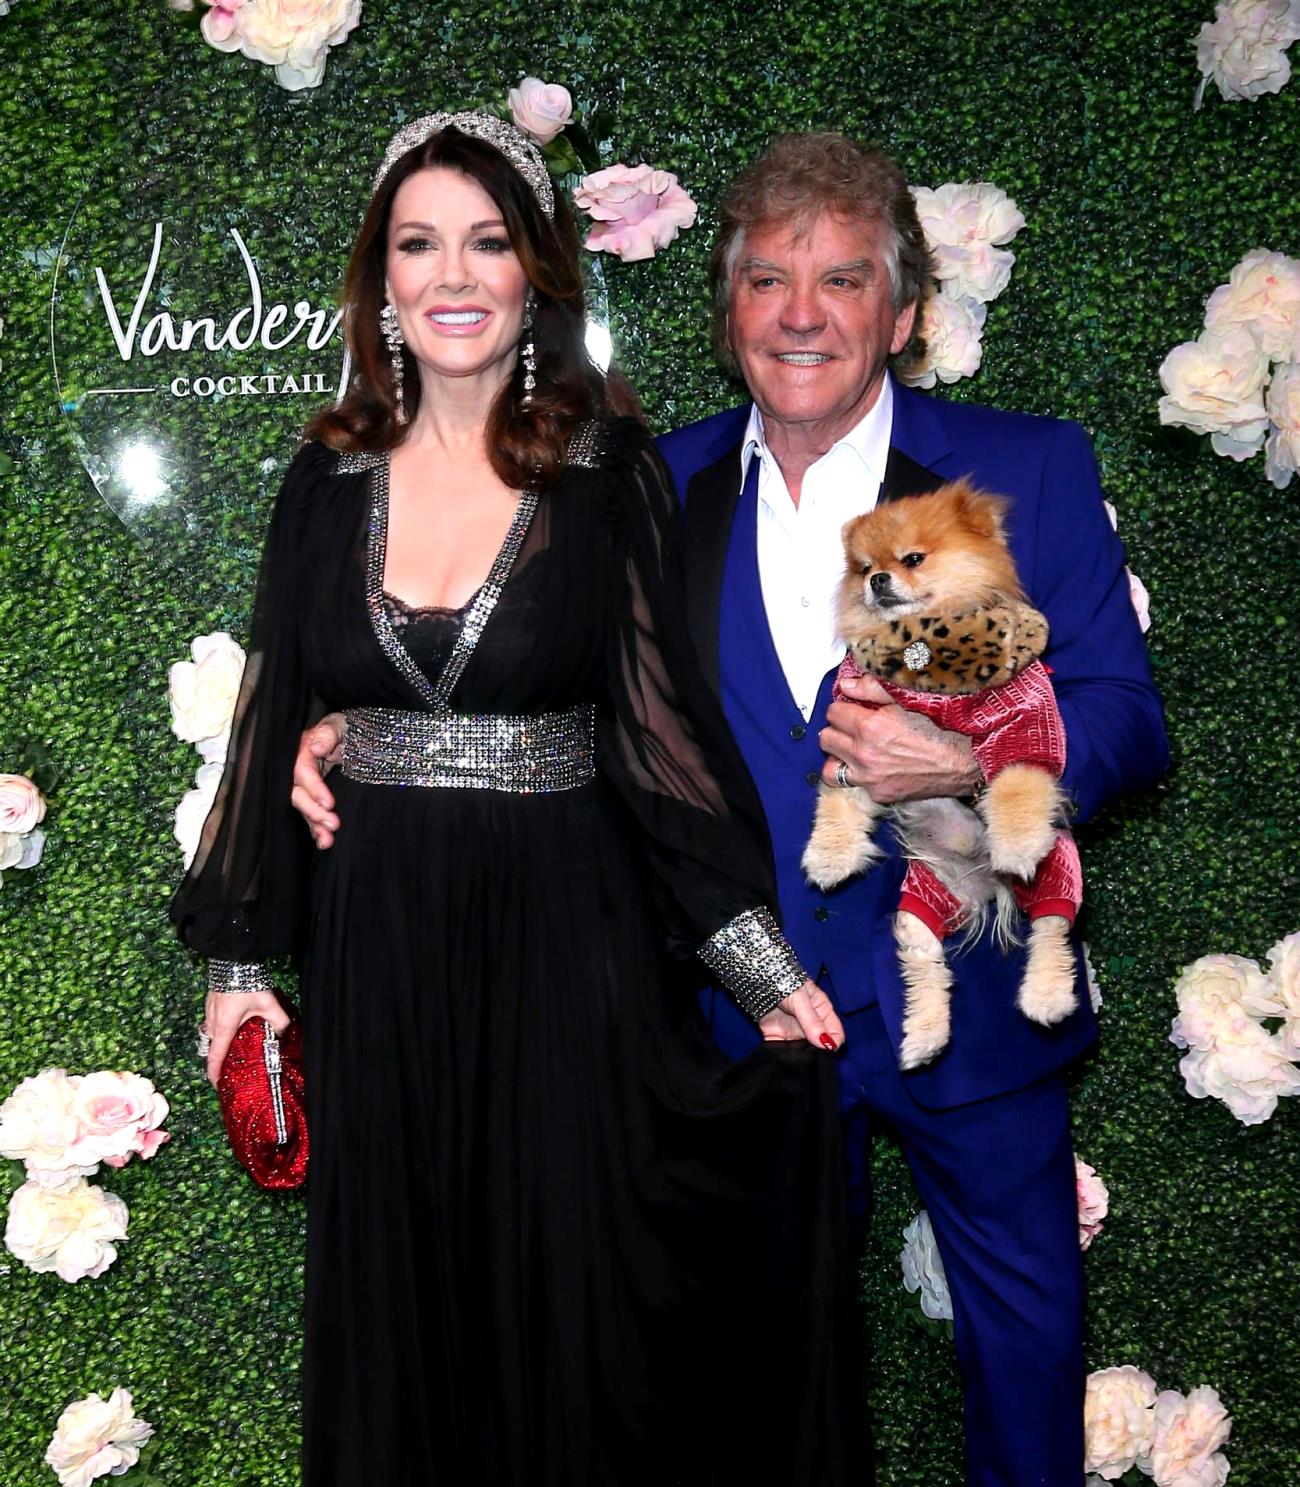 PHOTOS: Lisa Vanderpump Opens New Restaurant in Las Vegas! See Which RHOBH Co-Star Attended Event Plus Photos of Vanderpump Rules Cast